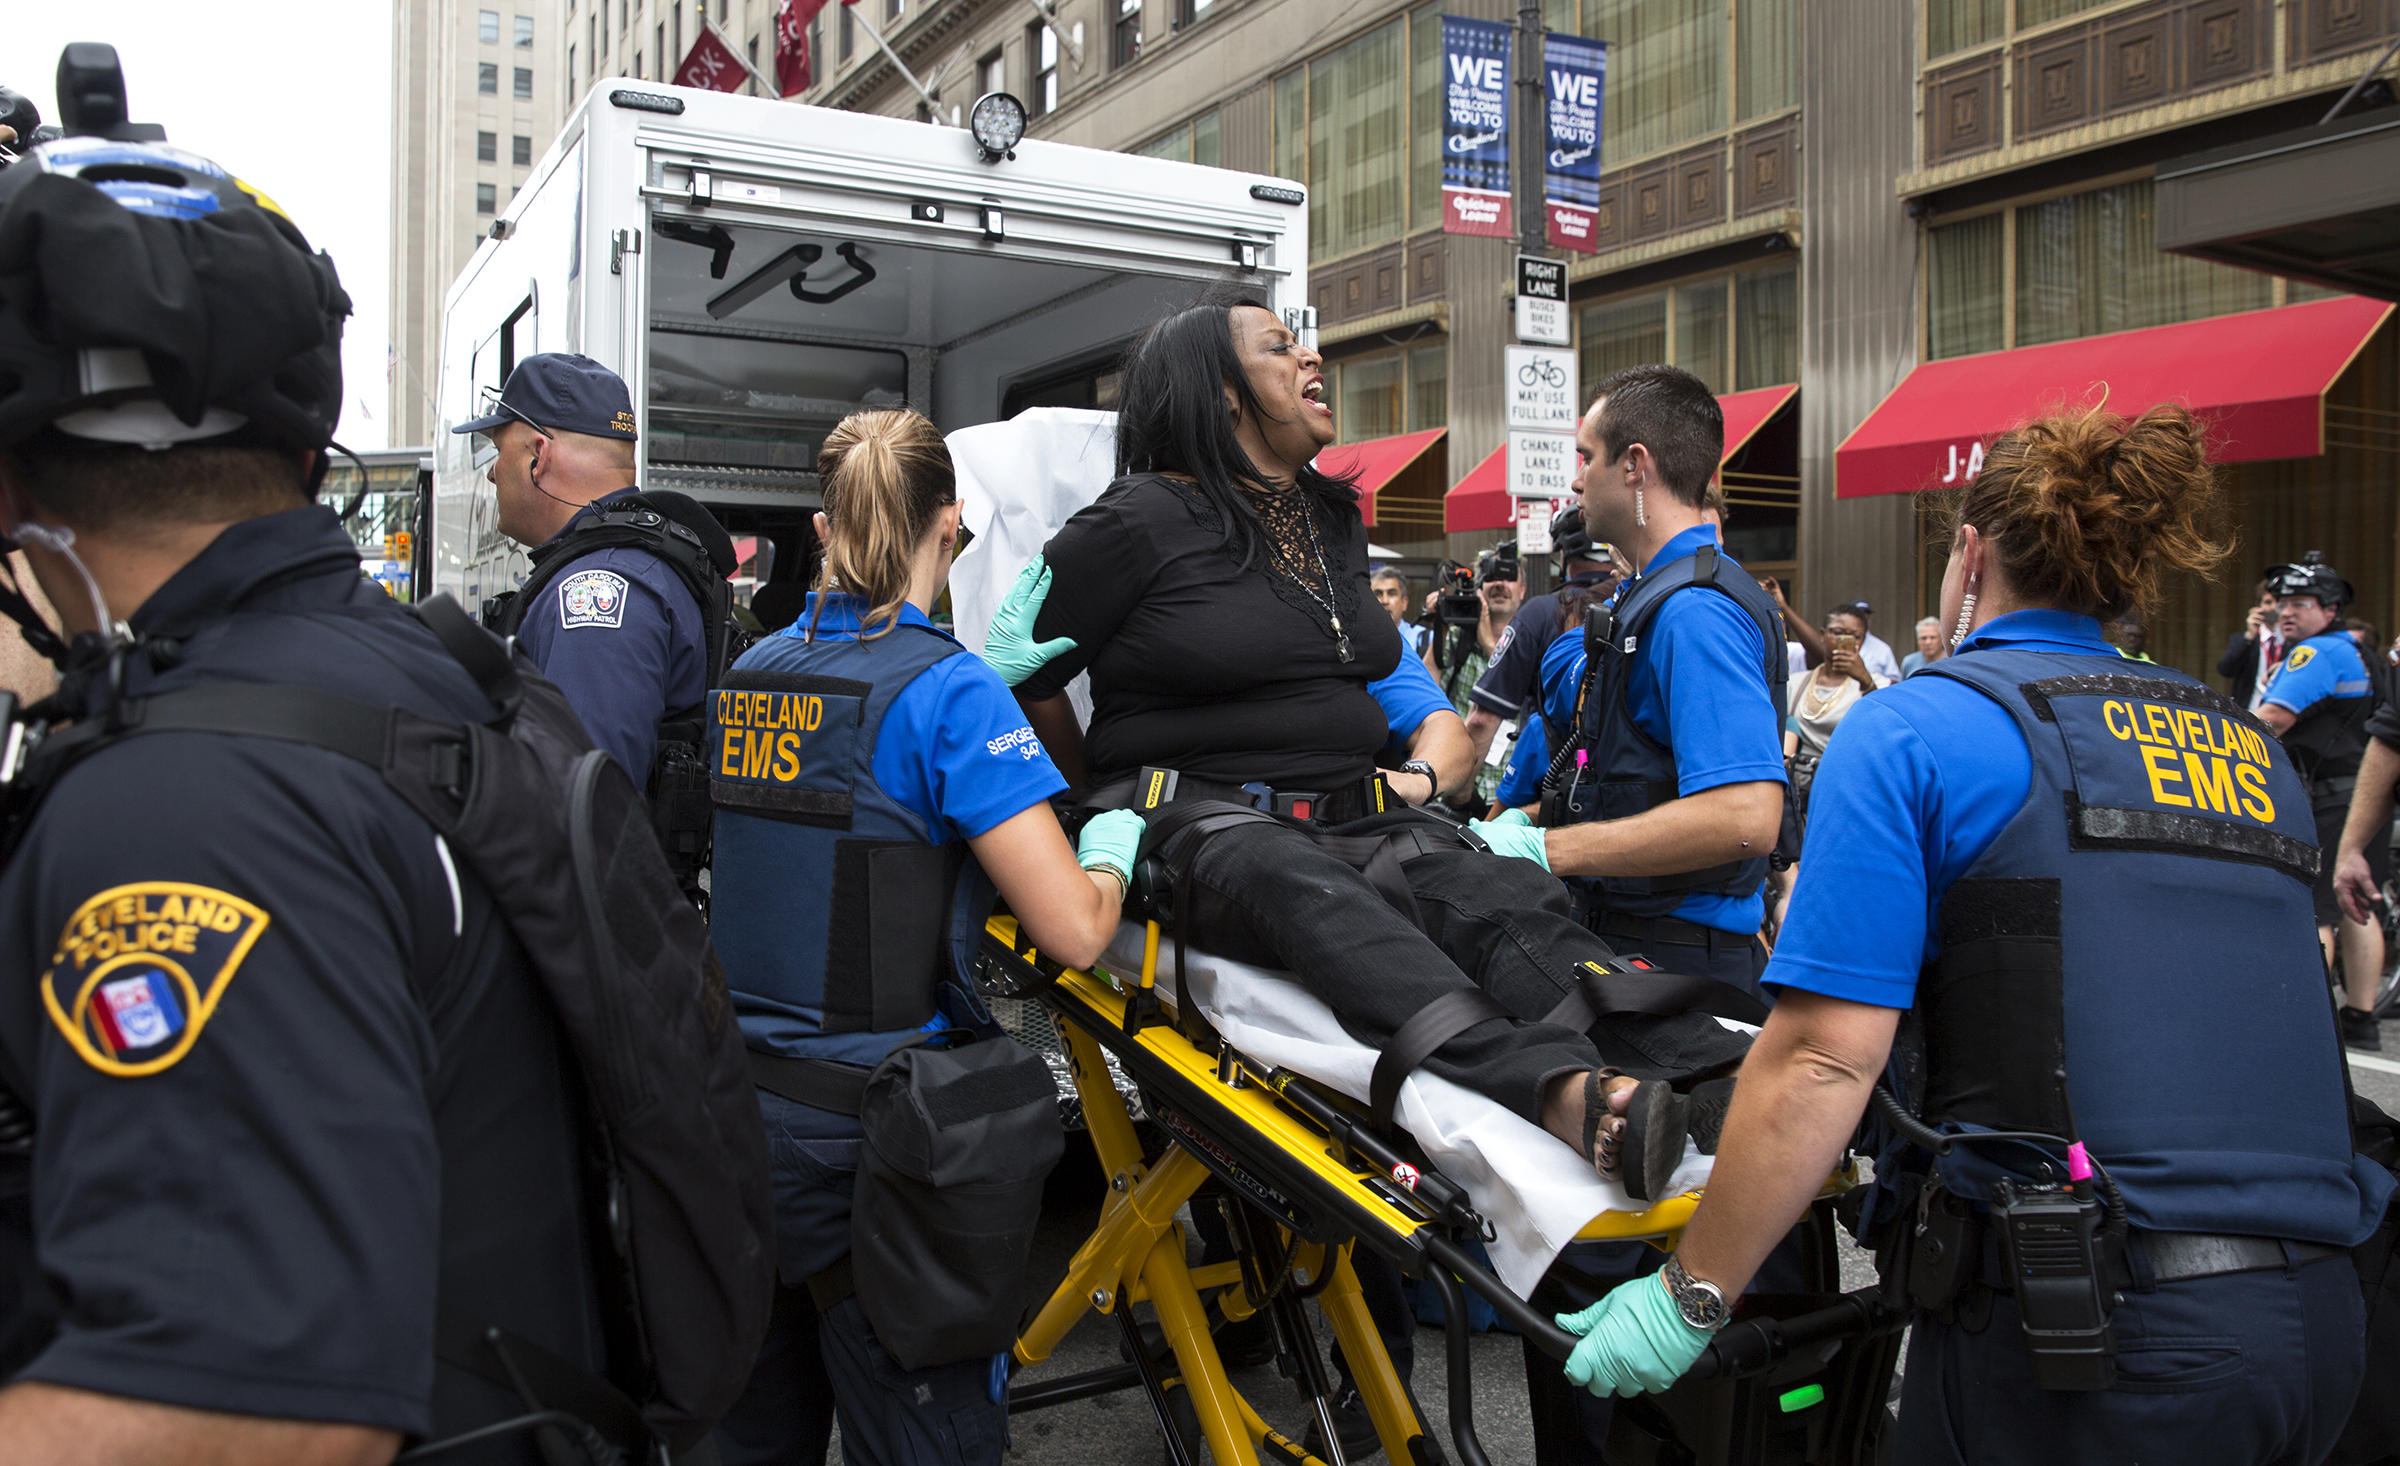 Activist Kathy Wray Coleman, of Cleveland, who was handcuffed by police during a protest at the Republican National Convention on Monday, is transported to an ambulance after she complained of chest pains. Coleman is a leader of the Imperial Women's Coalition. (Photo by Antonella Crescimbeni/Penn State College of Communications)